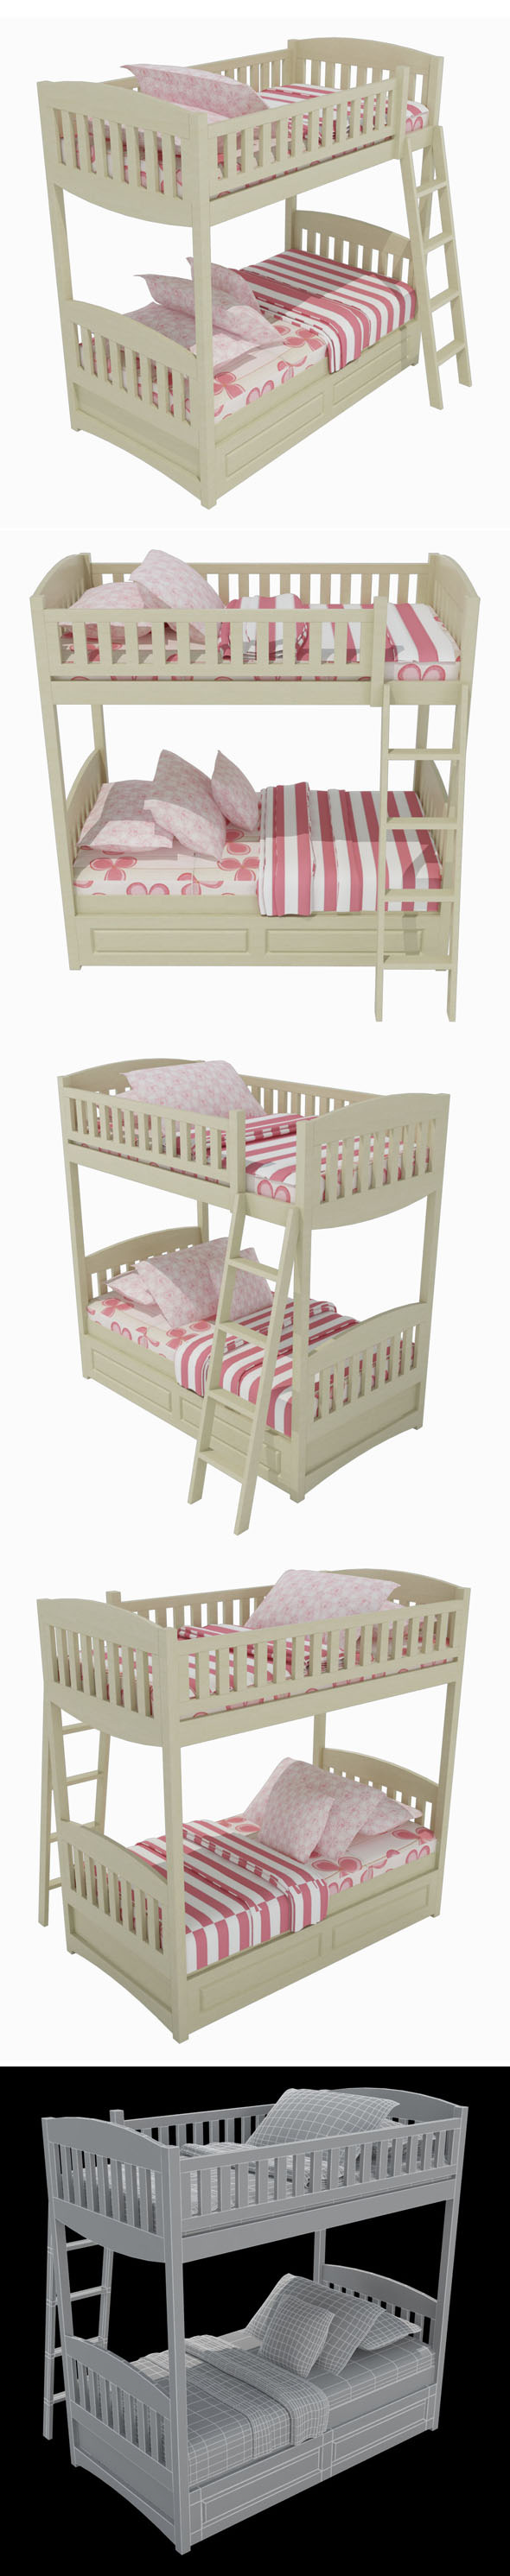 3DOcean Child Bed 4 11629113